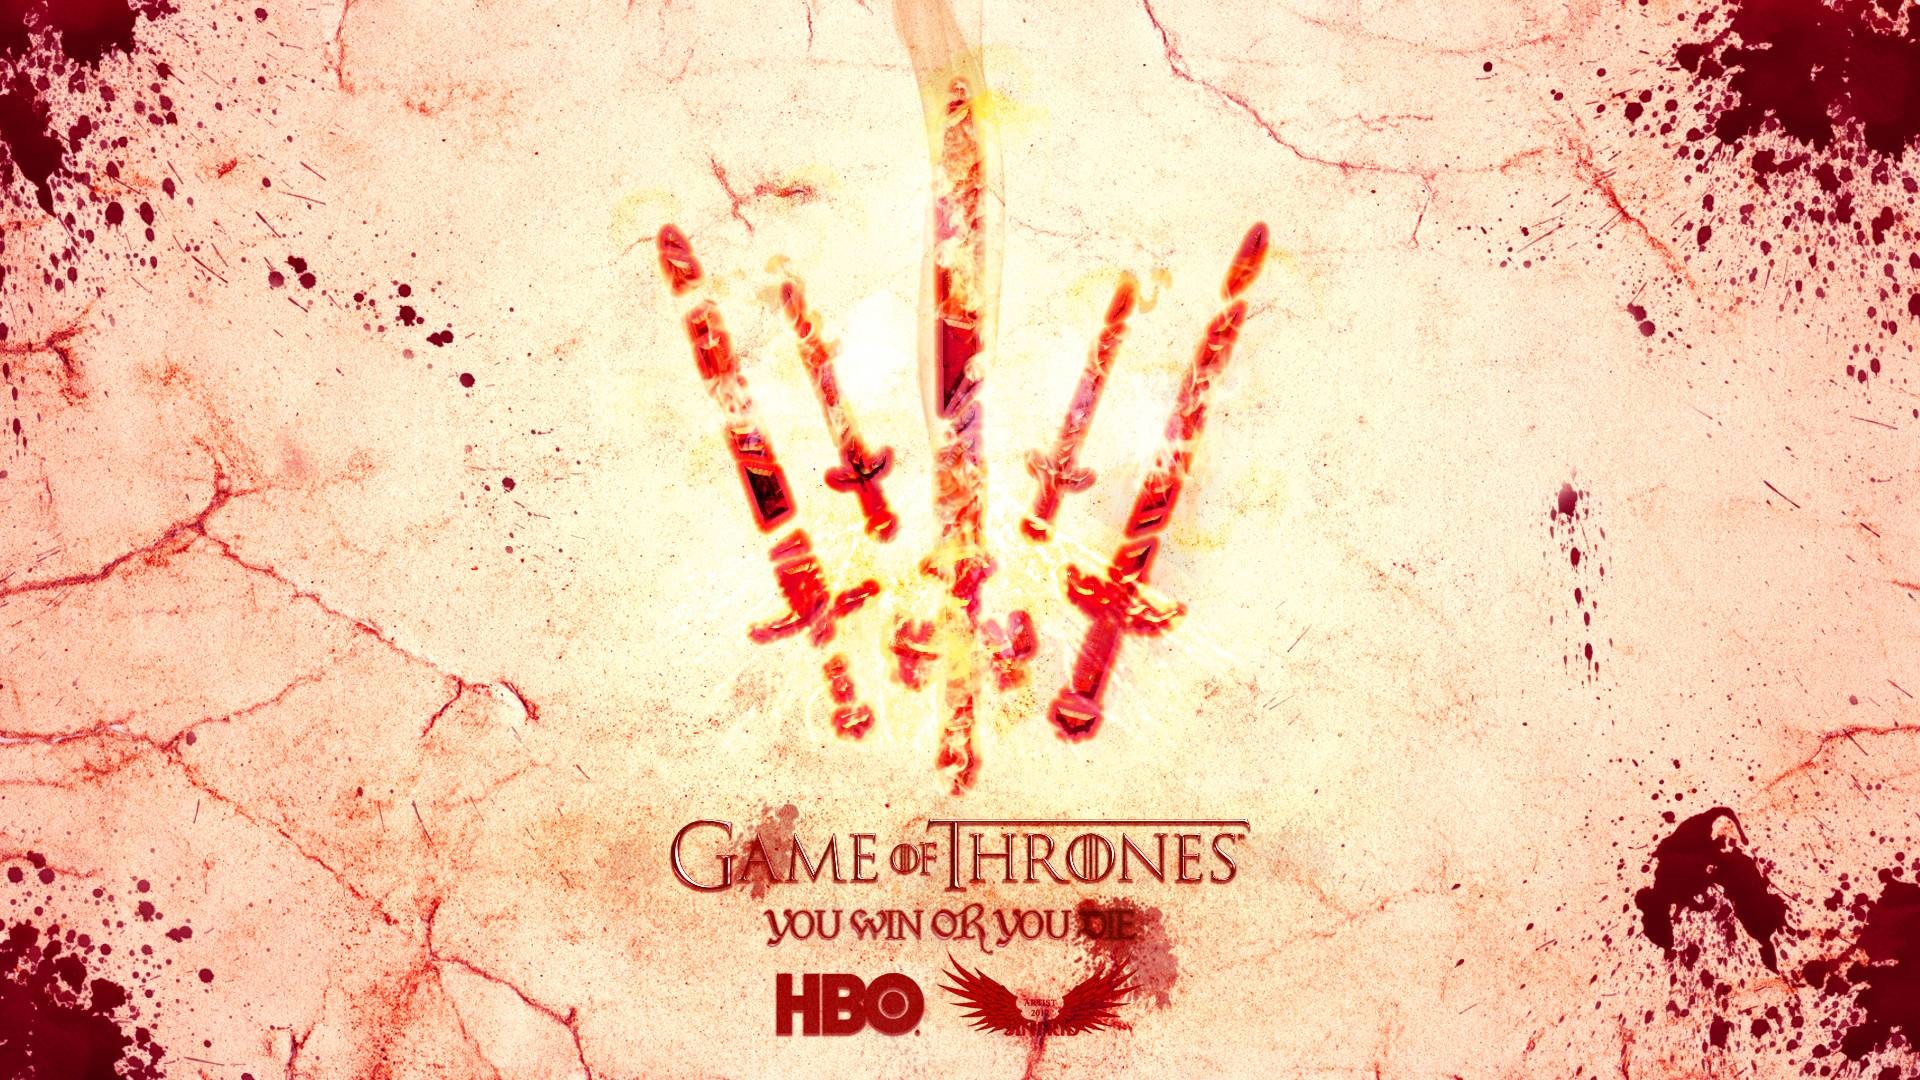 Game Of Thrones Hbo Wallpapers   Movies Wallpapers